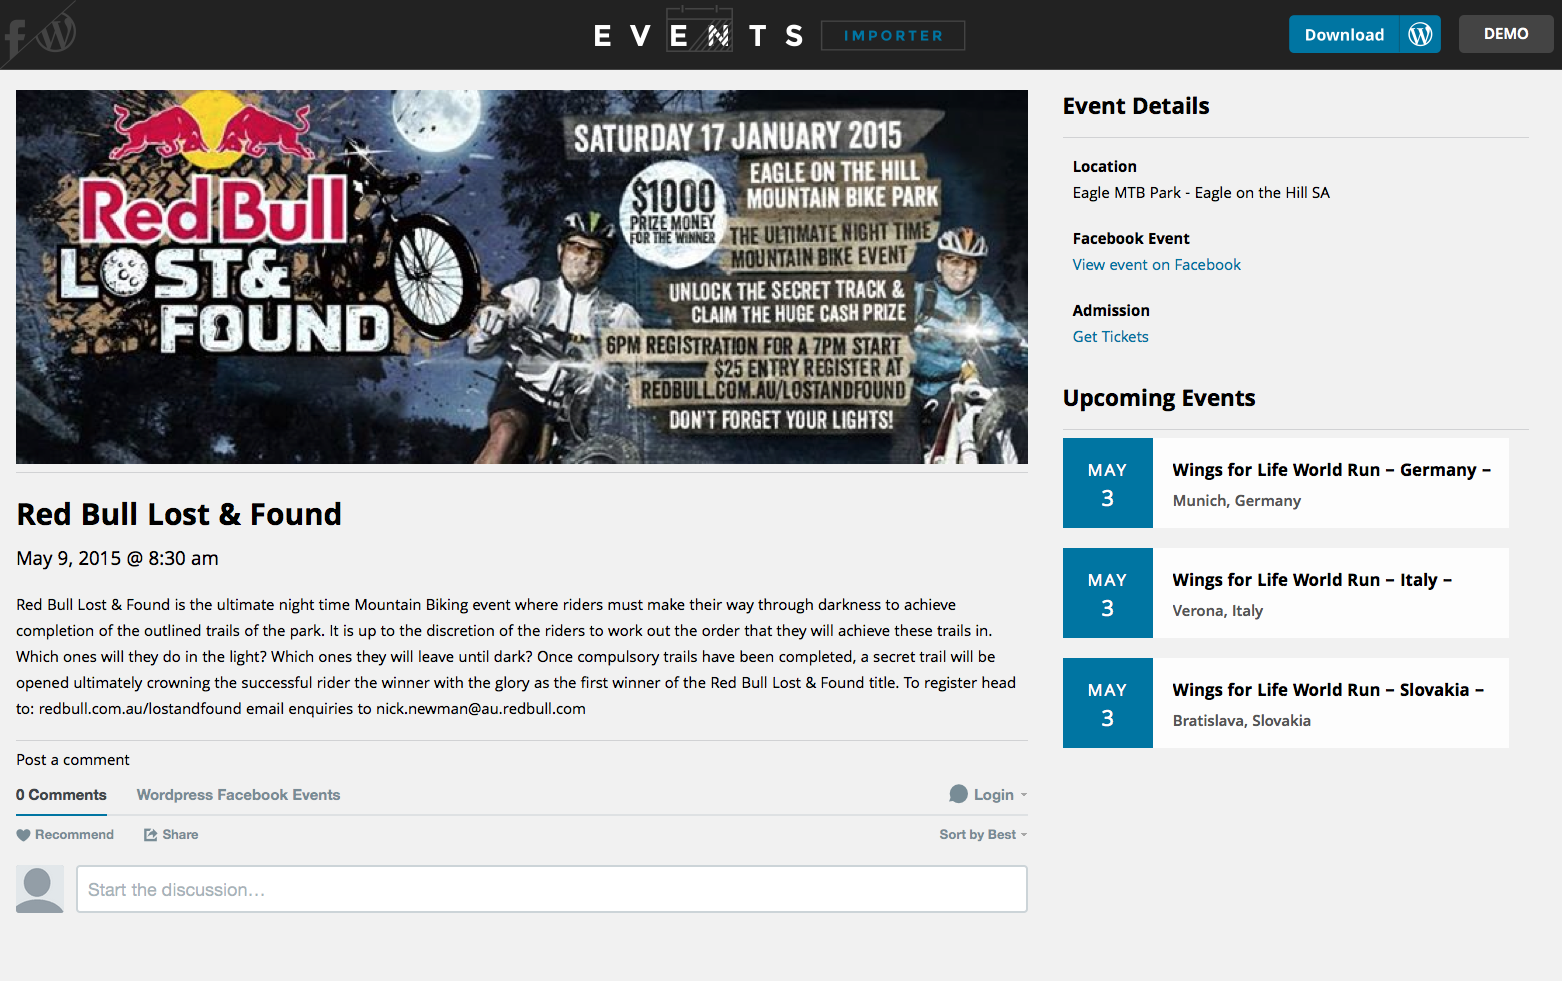 facebook-events-importer screenshot 1